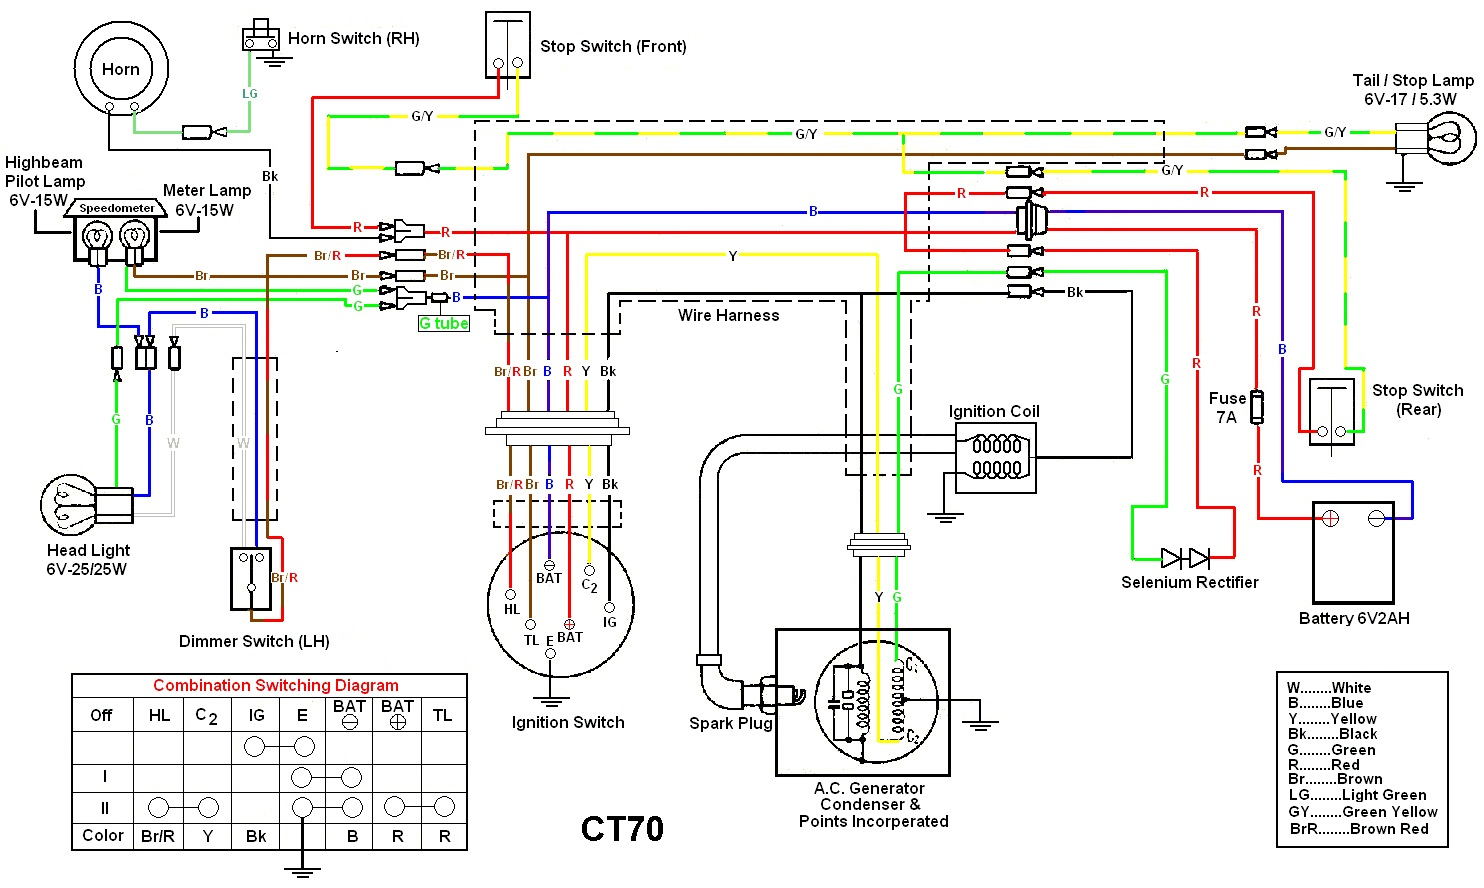 Diagram 1982 Ct70 Wiring Diagram Full Version Hd Quality Wiring Diagram Diagramsdobos Caditwergi It